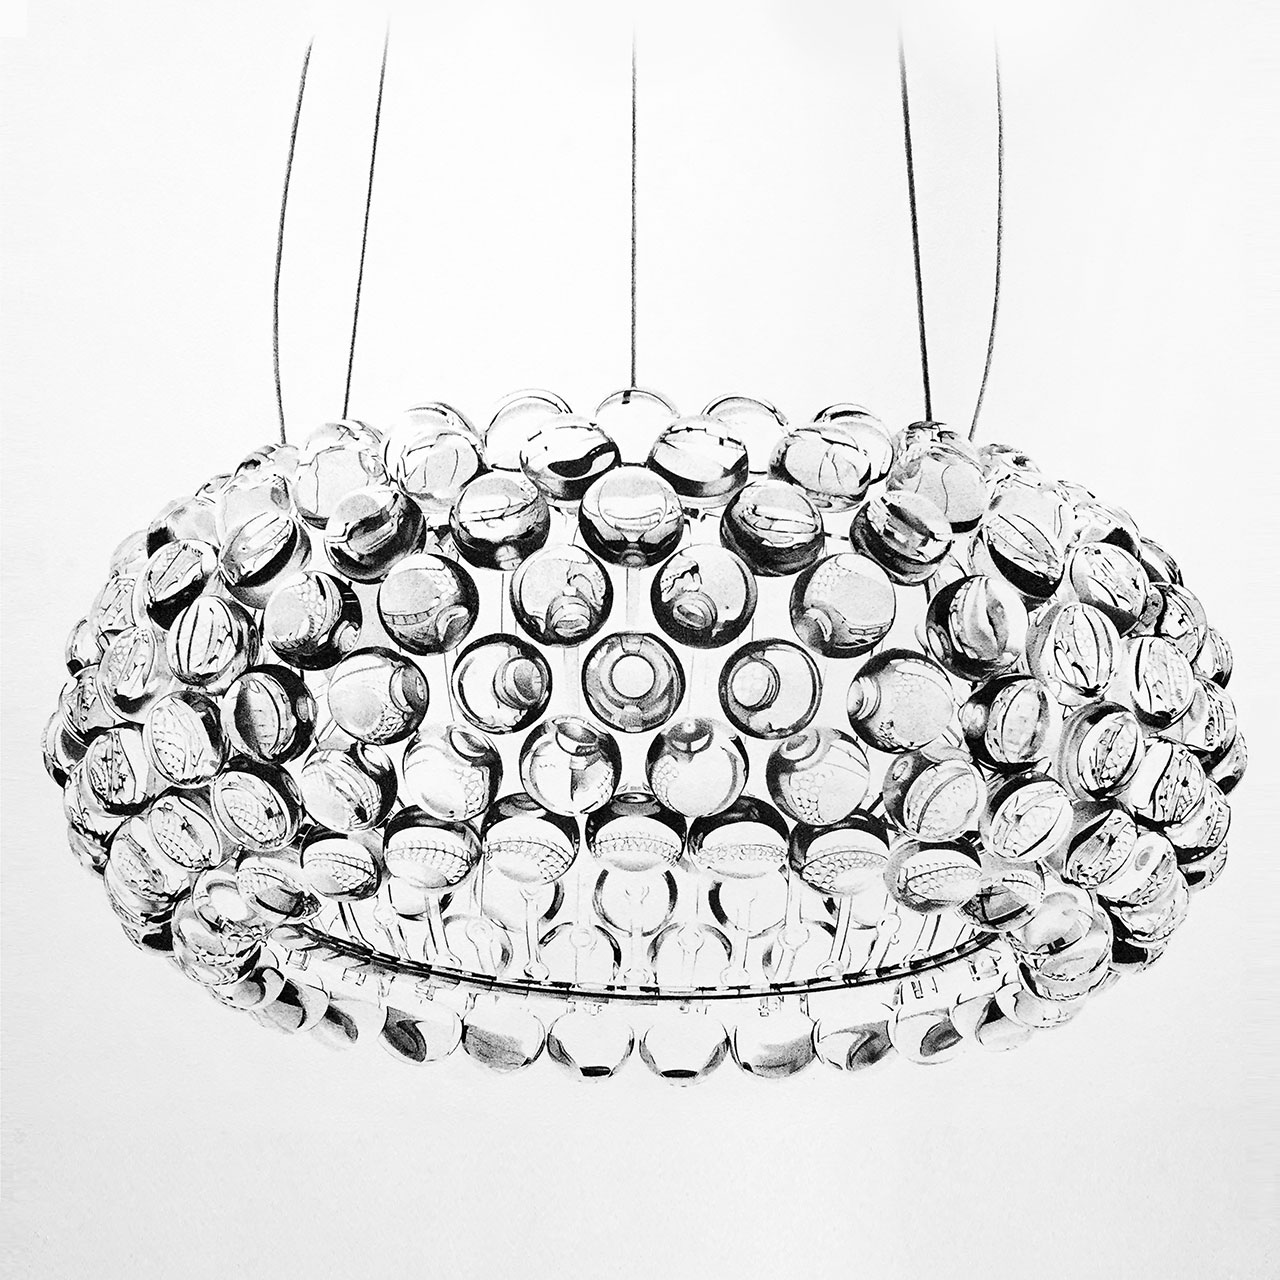 Alessandro Paglia, CABOCHE LAMP (Designed by Patricia Urquiola and Eliana Gerotto for FOSCARINI), 75 x 75 cm unframed.